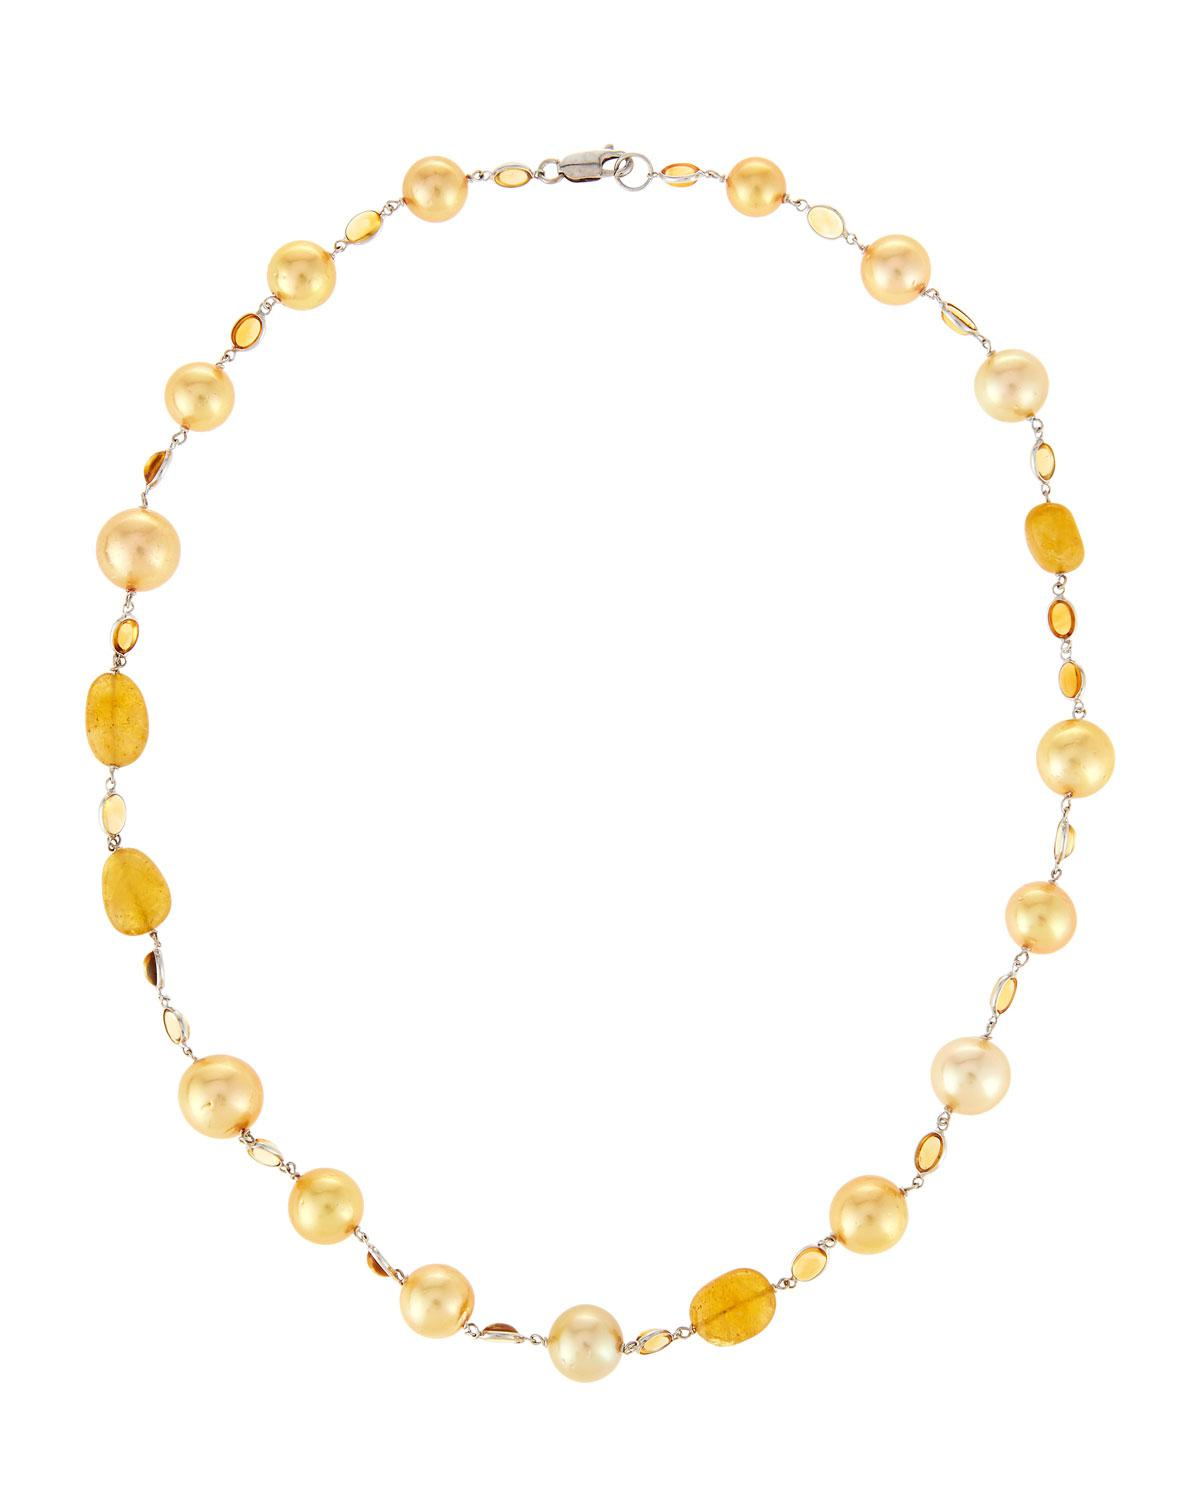 Belpearl 18k Single South Sea Pearl Wire Necklace, Golden